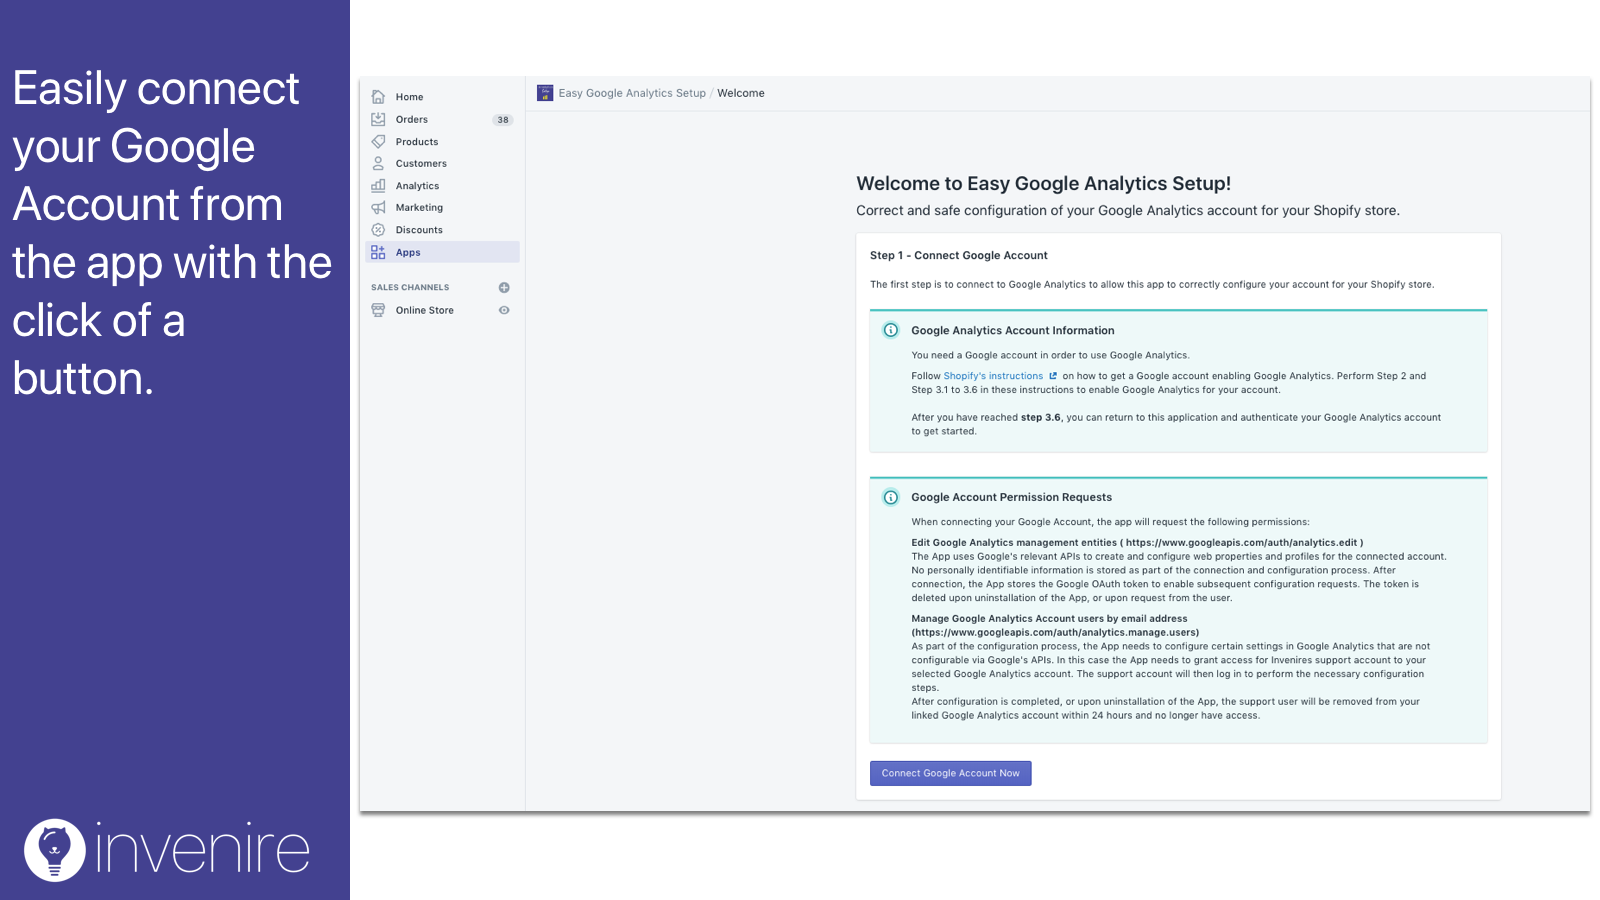 google analytics accounts can be easily connected in the app.